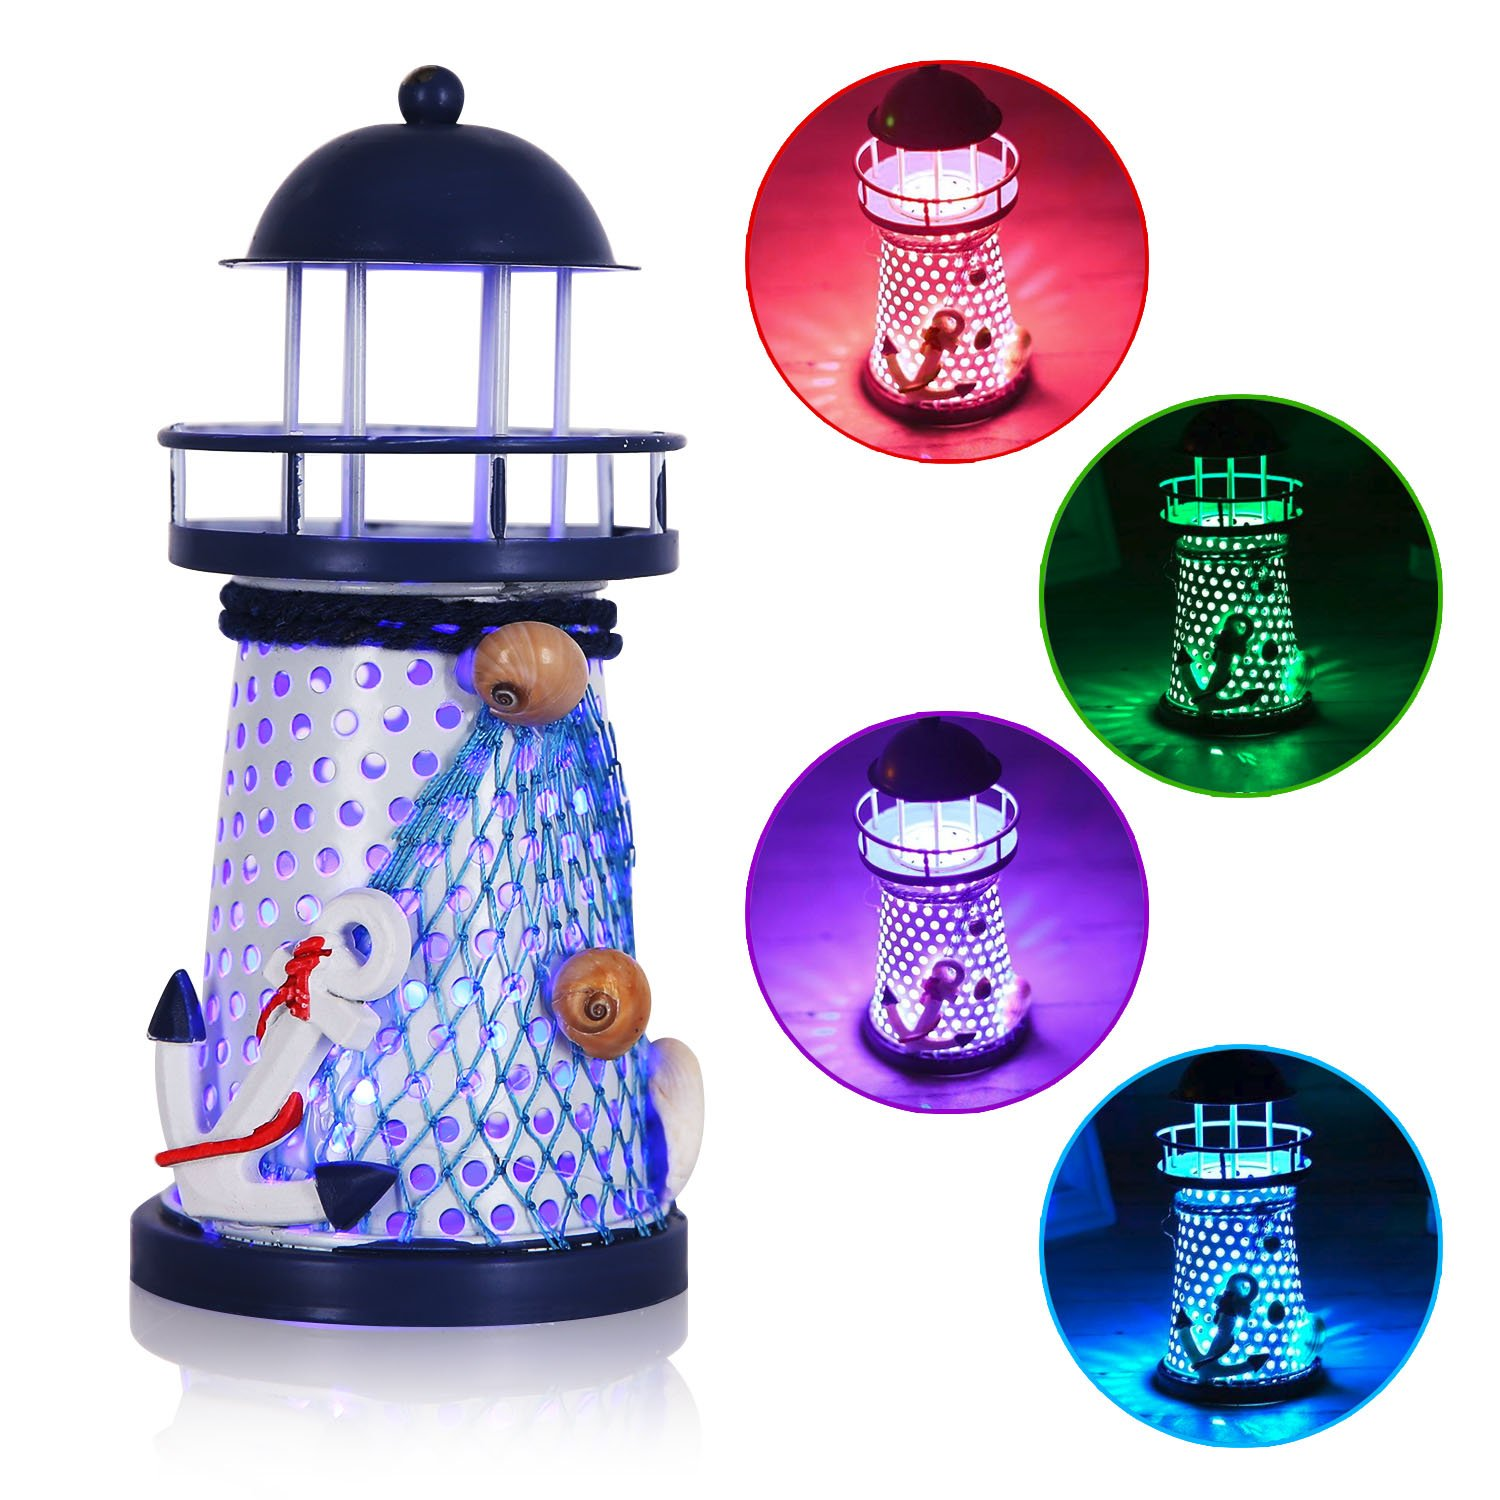 YESURPRISE Anchor Lighthouse Night Light Lamp Home Décor Color Changing LED Lantern Openwork Nautical Gifts for Kids Living Room Kitchen Desk Table Mediterranean Style Ocean Sea Beach Decoration by Yesurprise